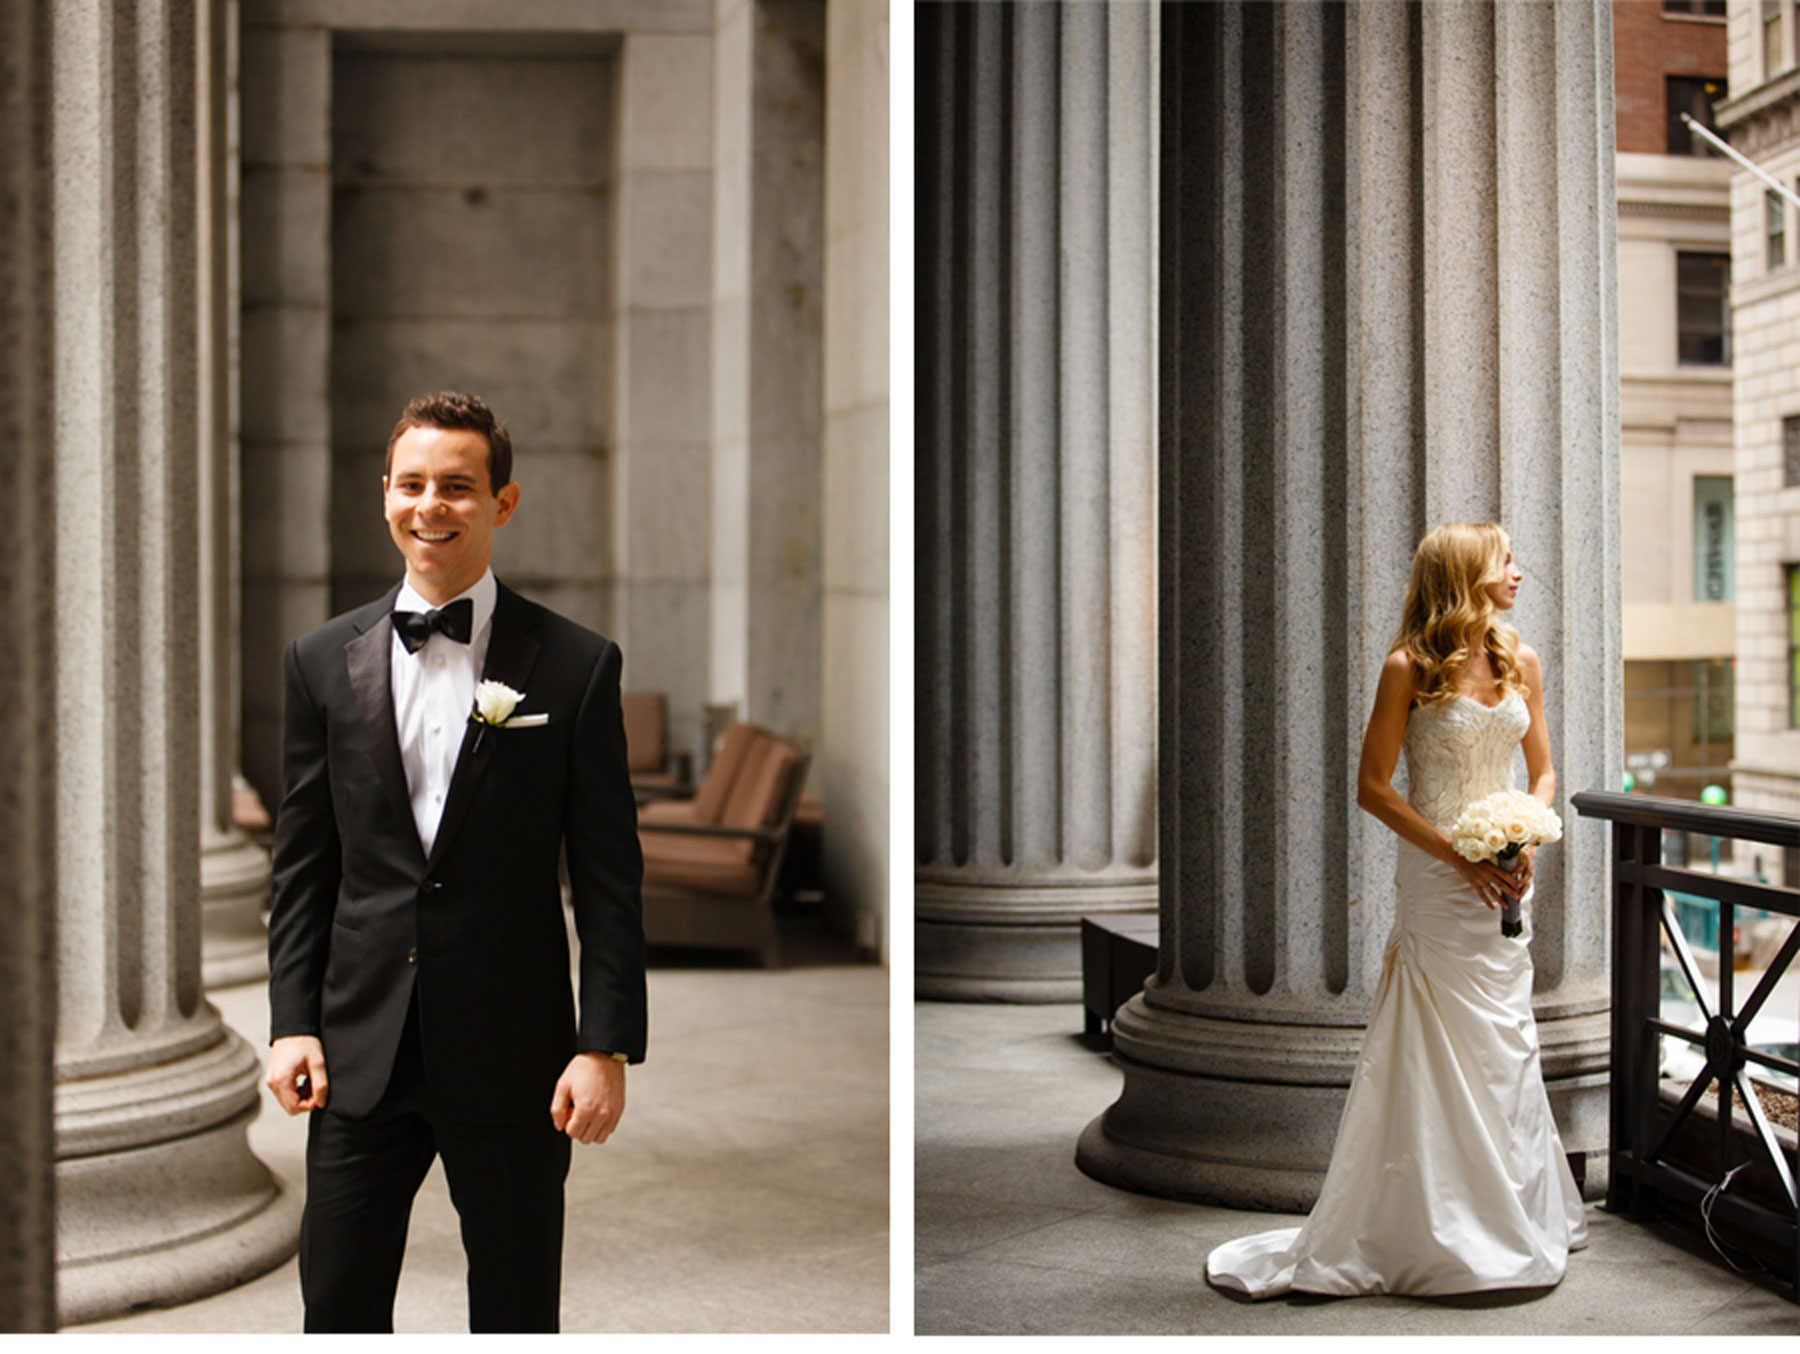 Our Muse - Classic Elegant New York Wedding at Cipriani - Be inspired by Jessica and David's classic elegant New York Wedding at Cipriani - wedding